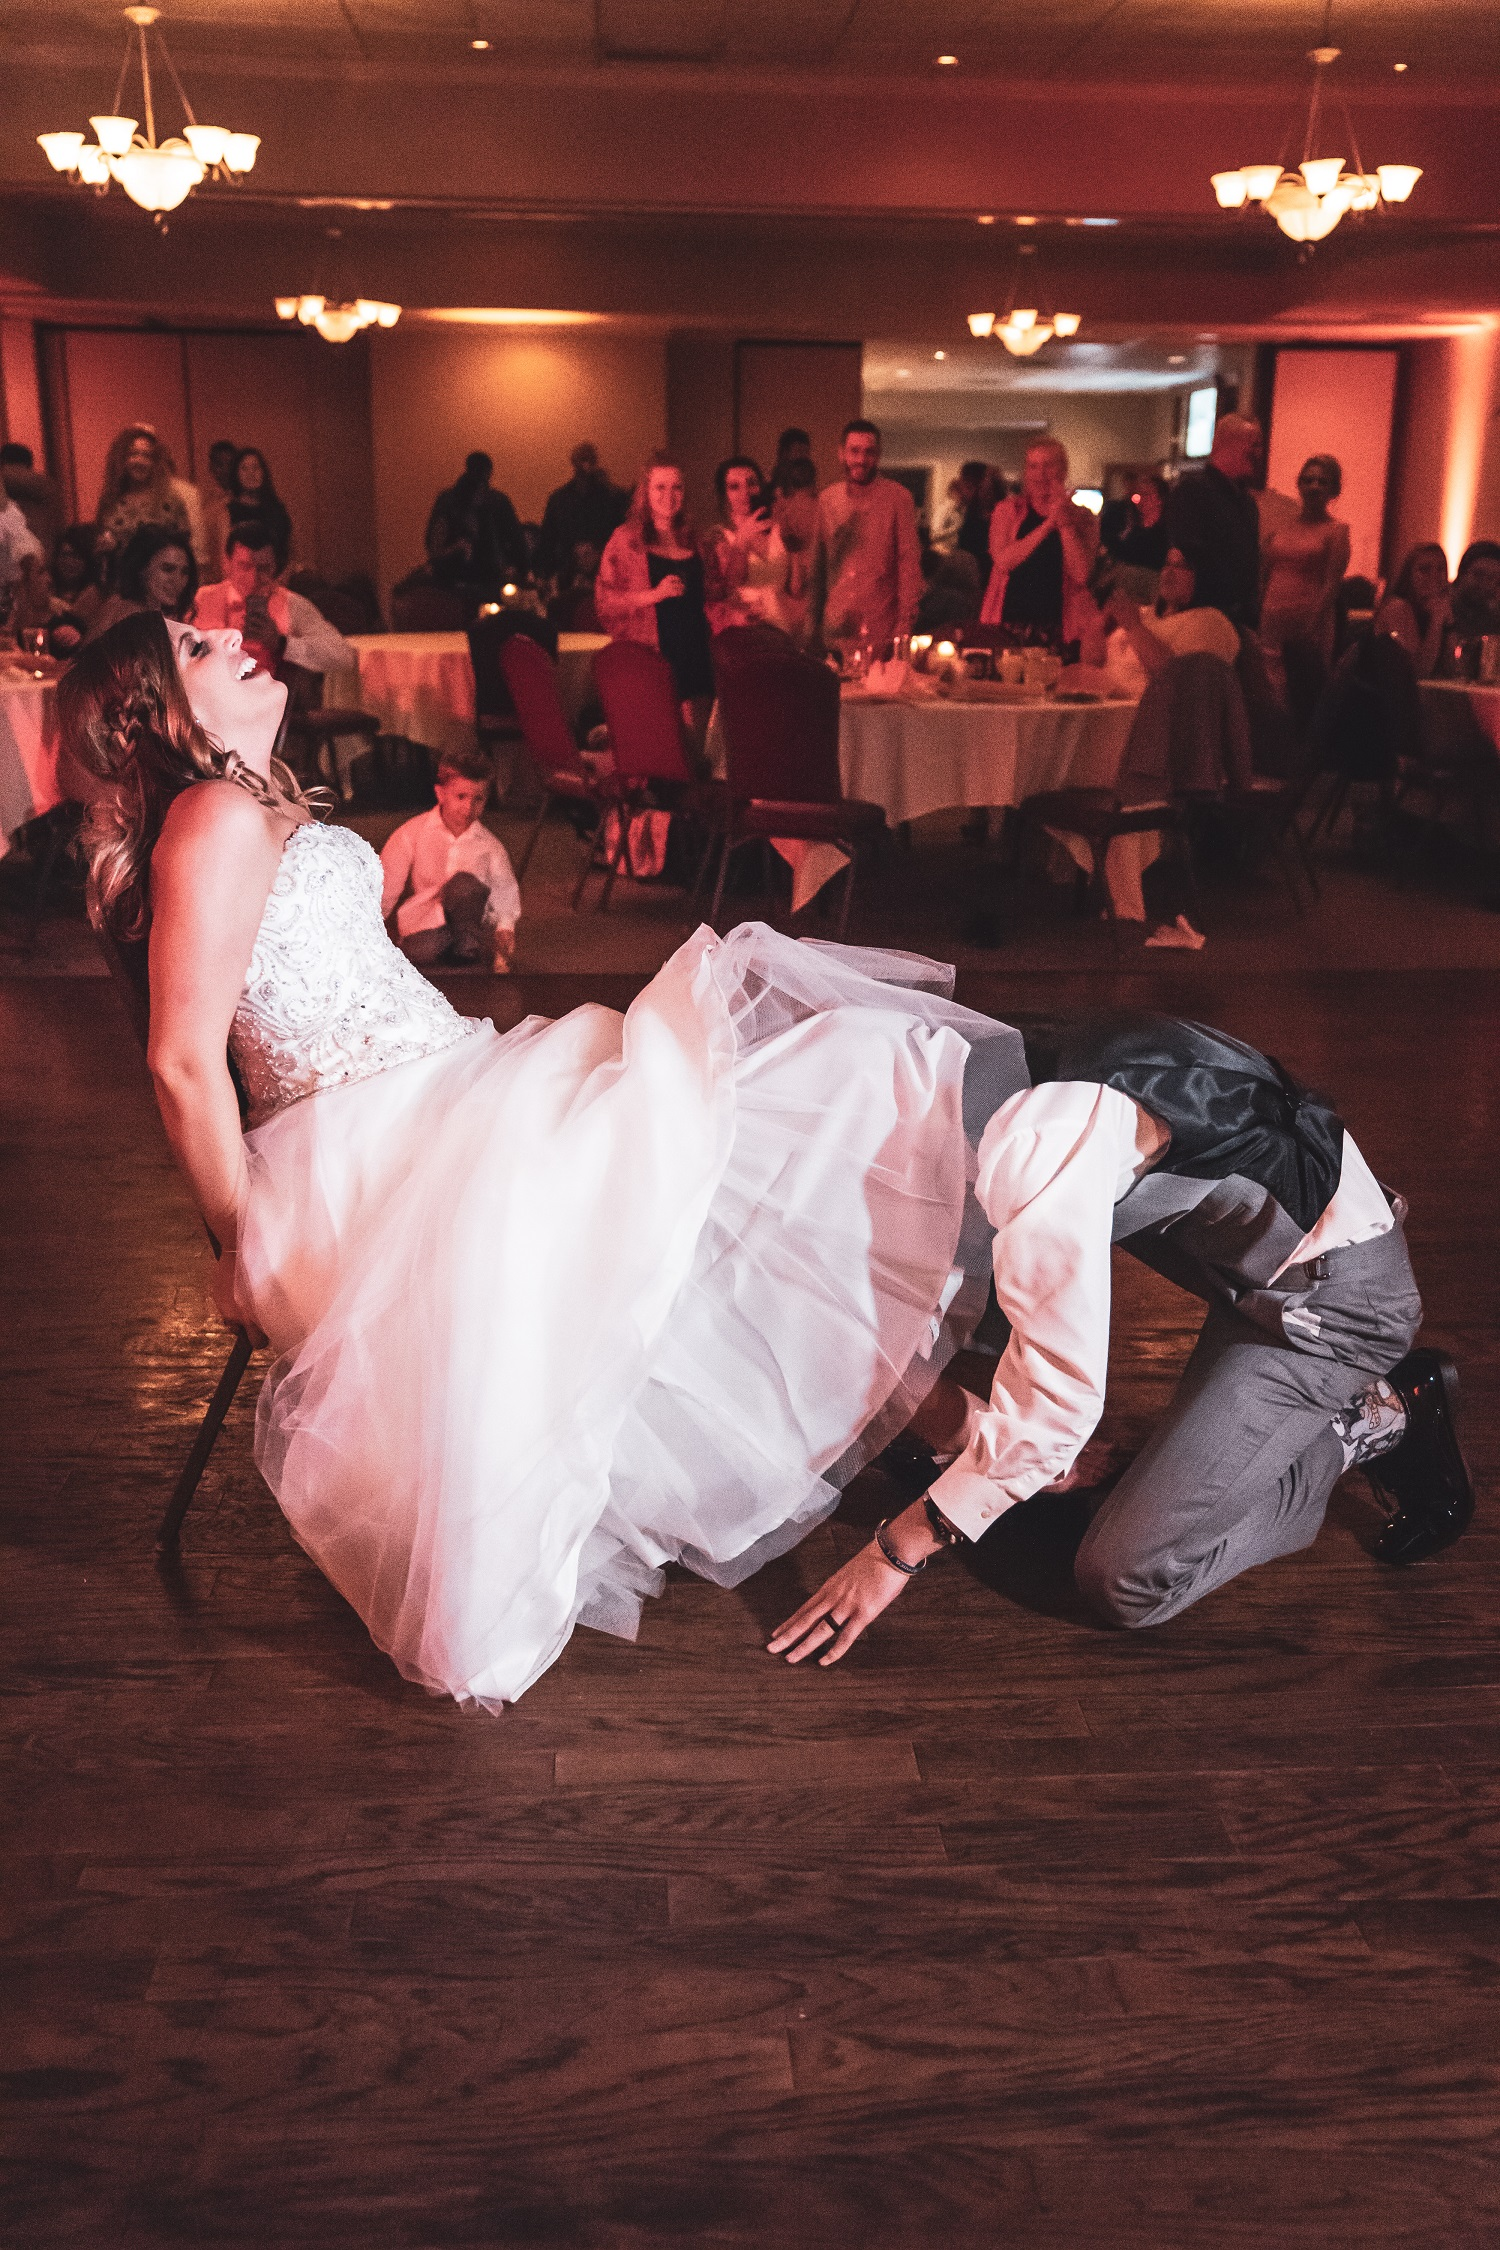 Wedding DJ Services in Washington D.C.